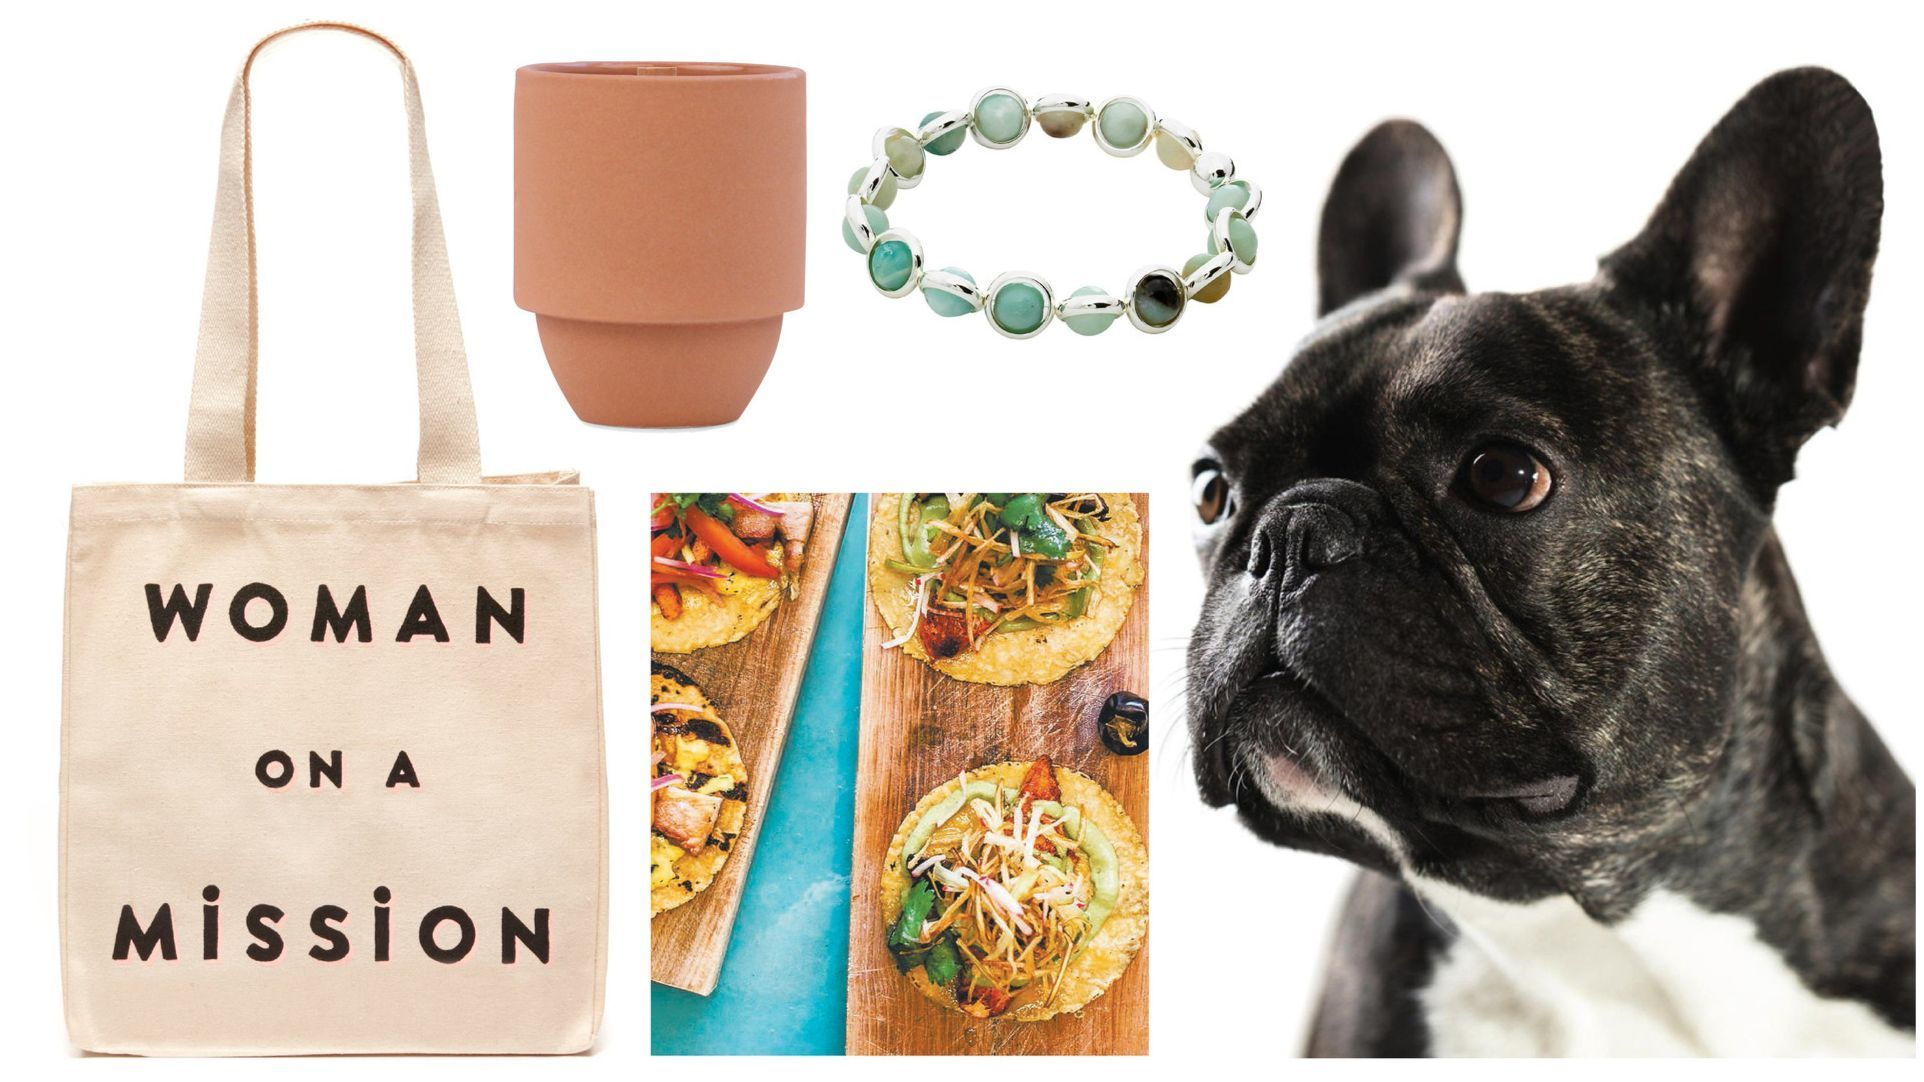 2018 holiday gift guide: Gifts that give back